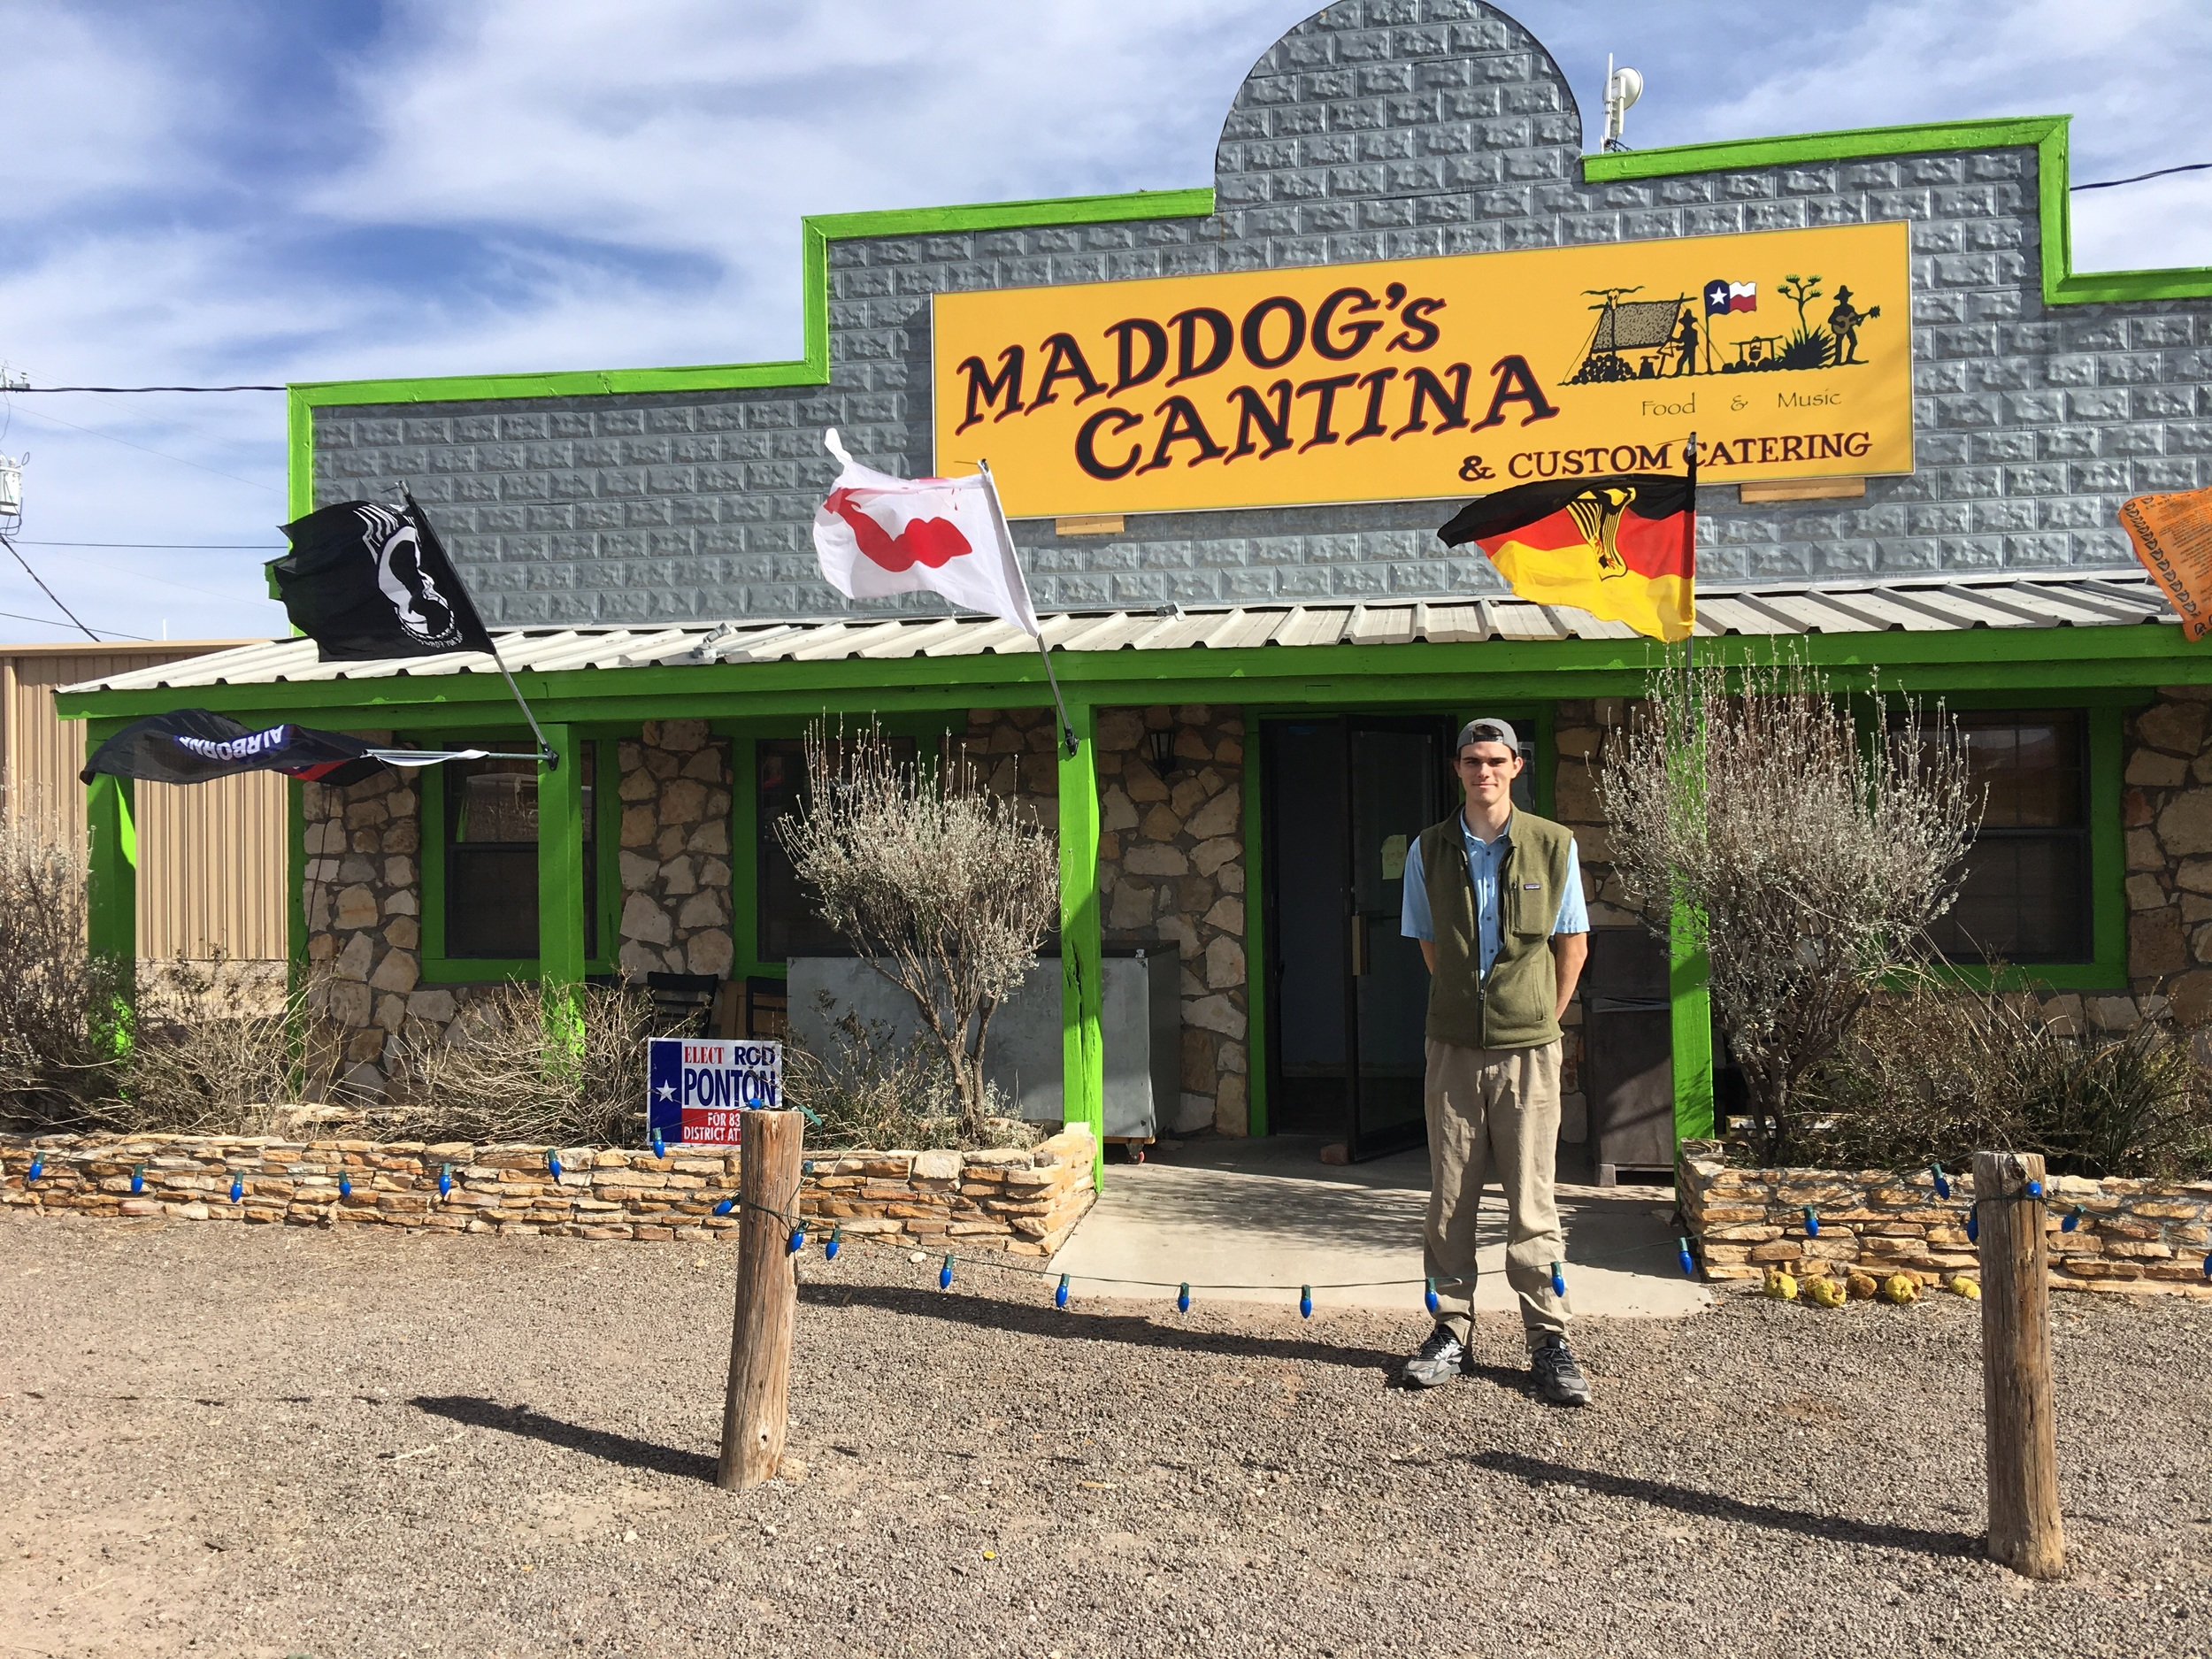 Caleb owns the Maddog Cantina in Fort Davis, he surprised us with an unusually great lunch in a no frills cafe. He shared a lot of the local history and his story of how he ended up here when his car broke down.